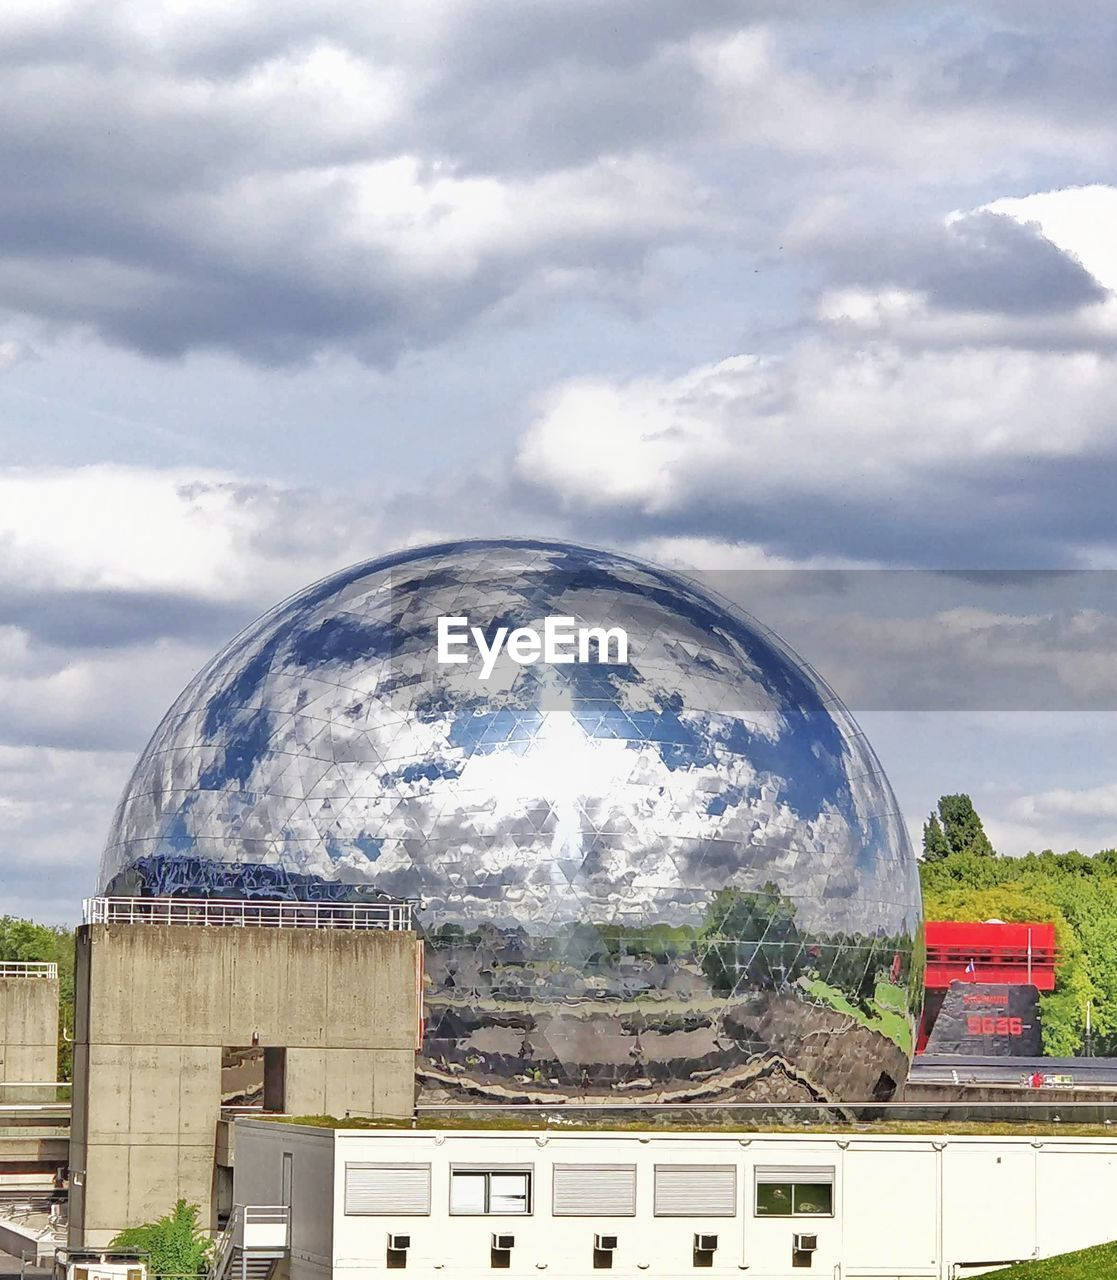 cloud - sky, built structure, sky, architecture, building exterior, nature, day, no people, building, outdoors, sphere, reflection, glass - material, tree, city, transparent, dome, plant, shape